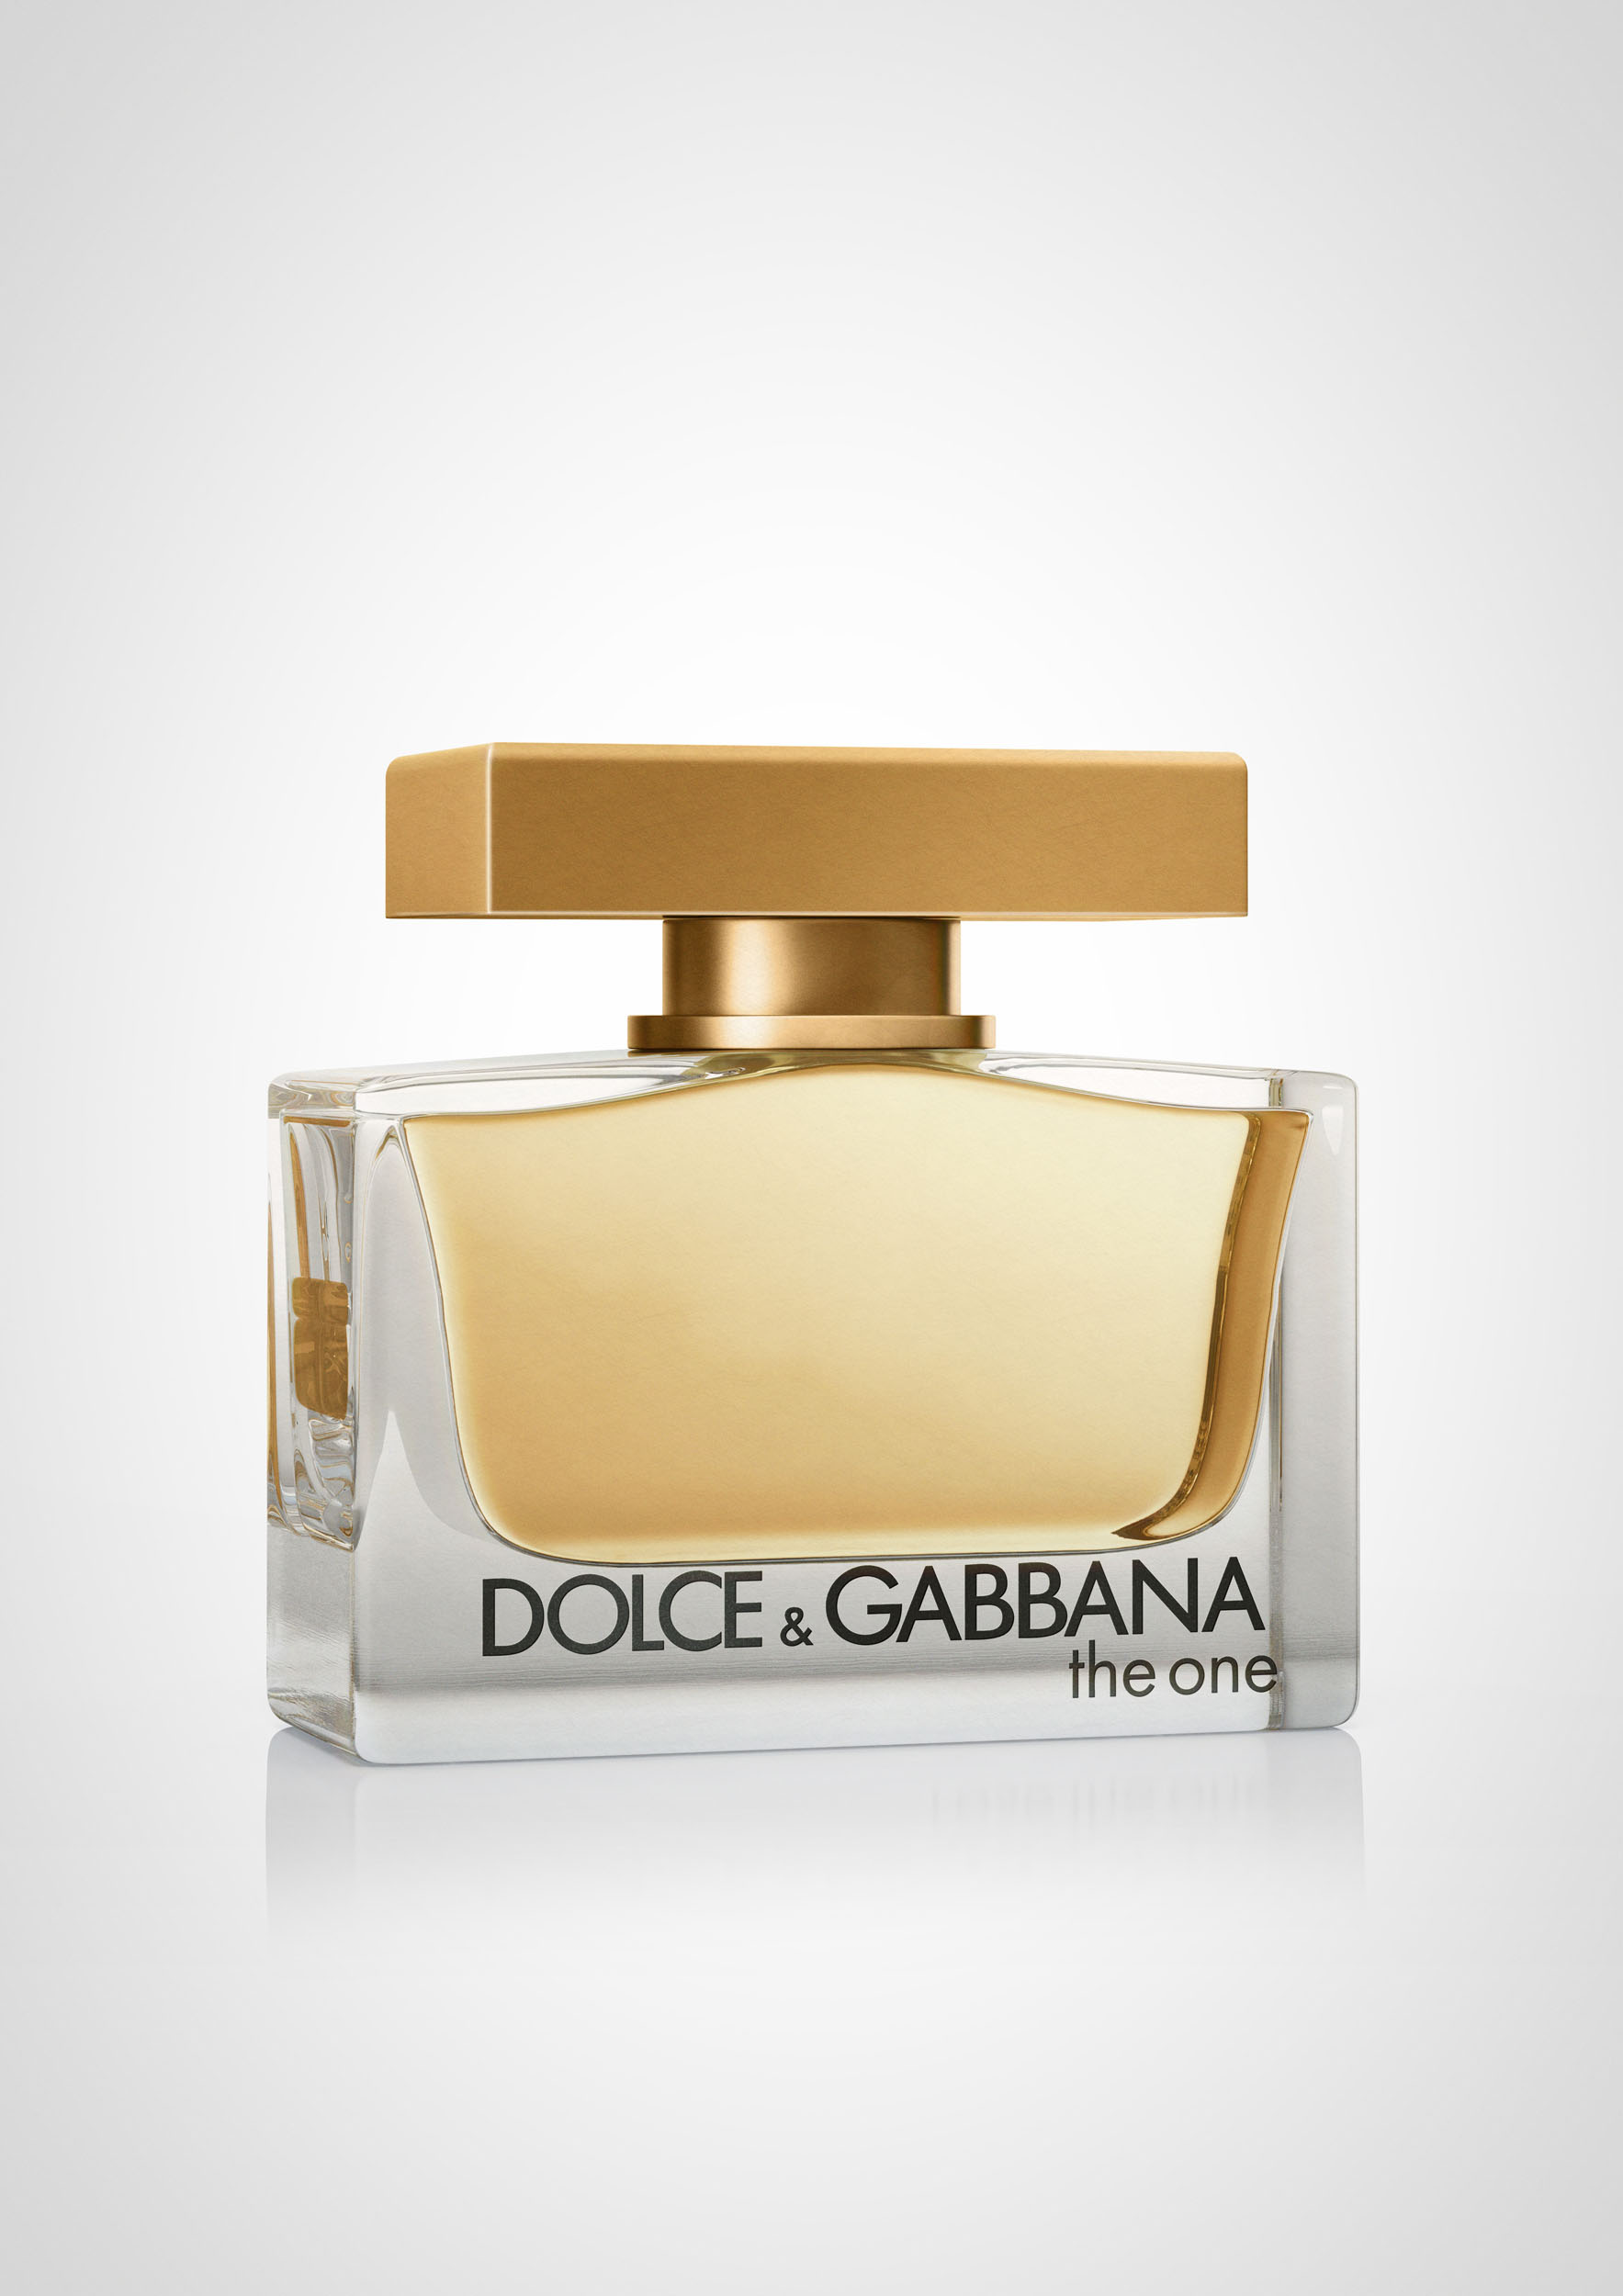 BOOM_CGI_PRODUCT_d&g-the-one-female-perfume.jpg